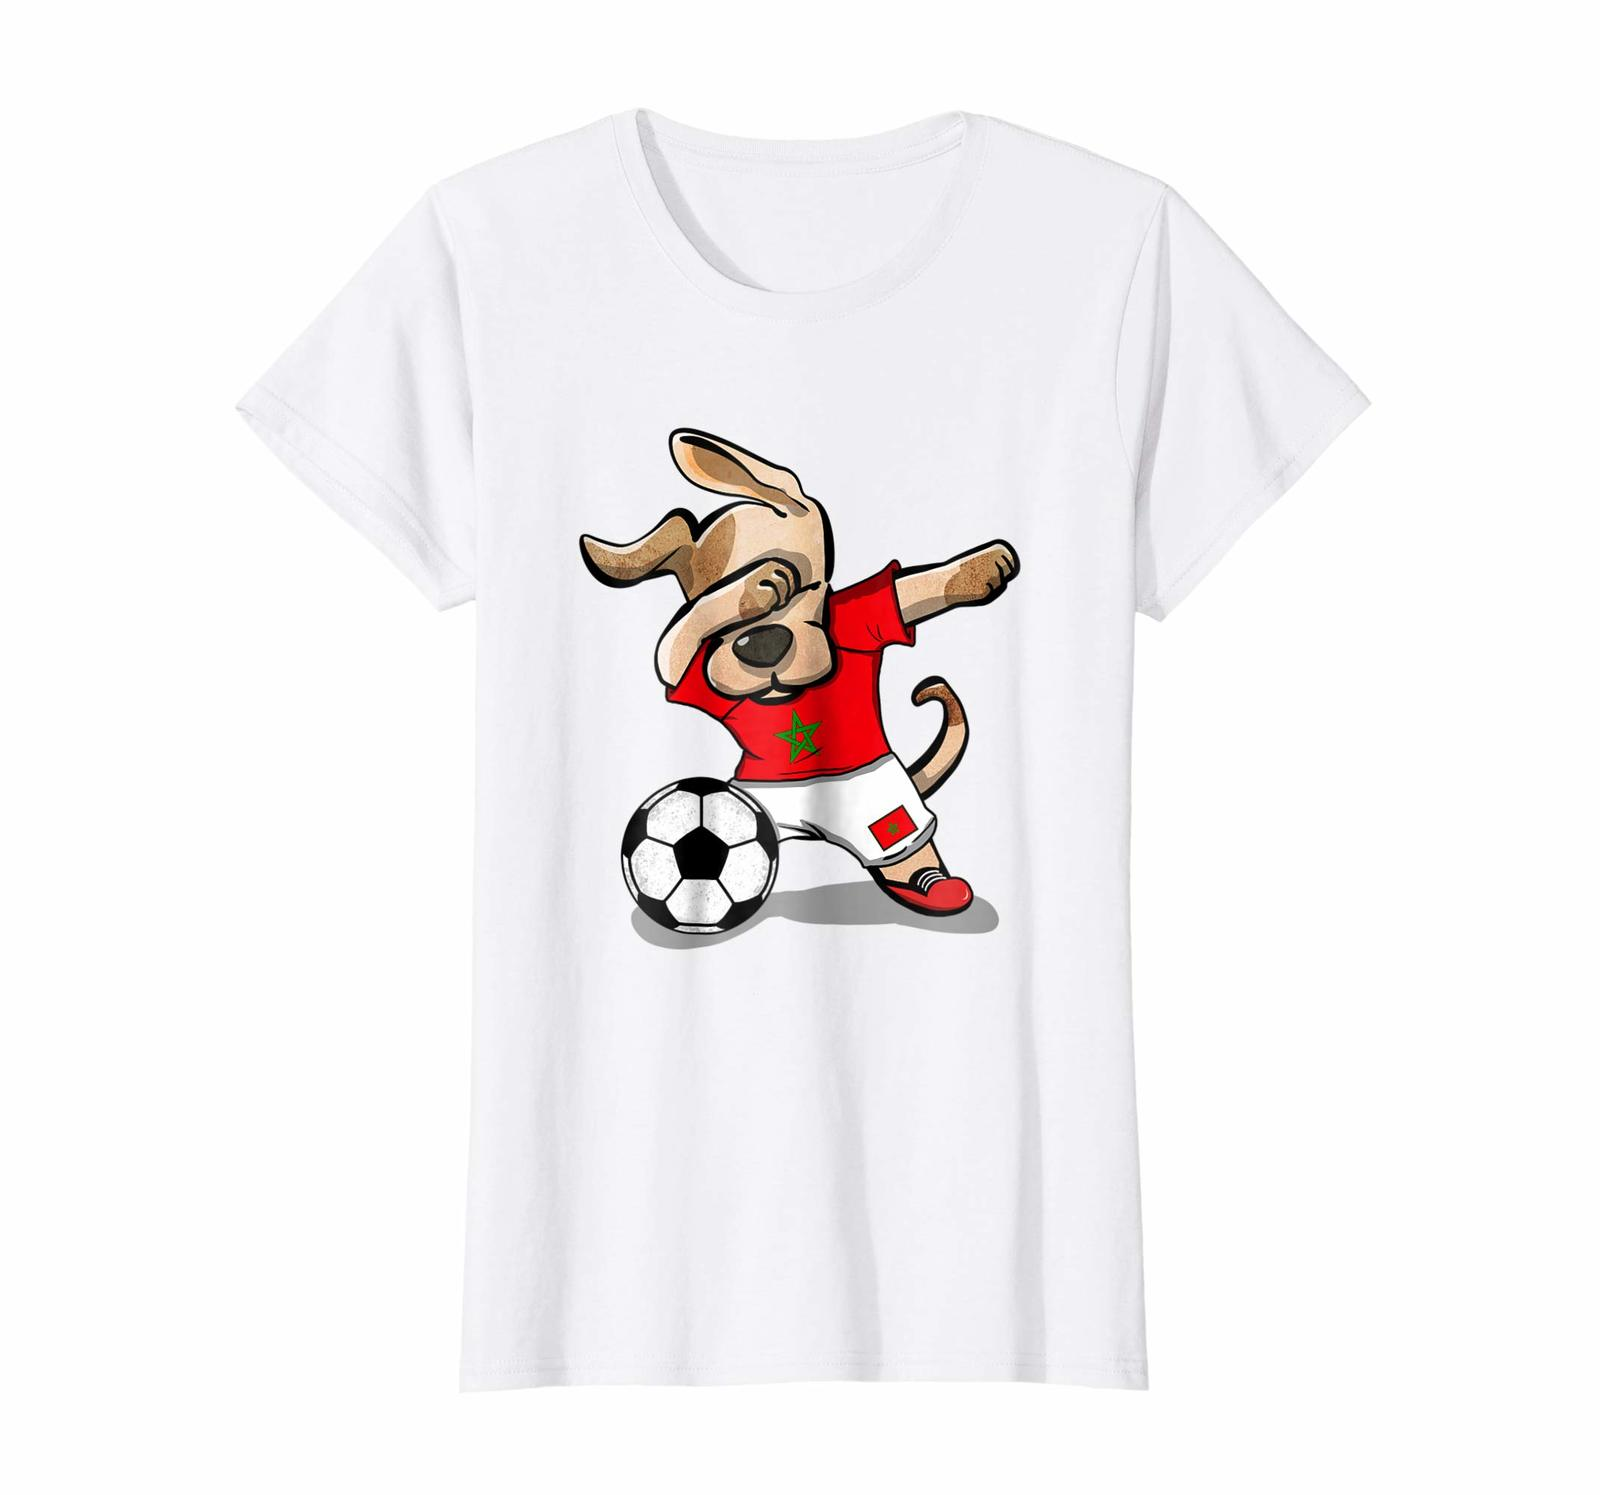 Primary image for New Shirts - Dog Dabbing Soccer Morocco Jersey Shirt Moroccan Football Wowen